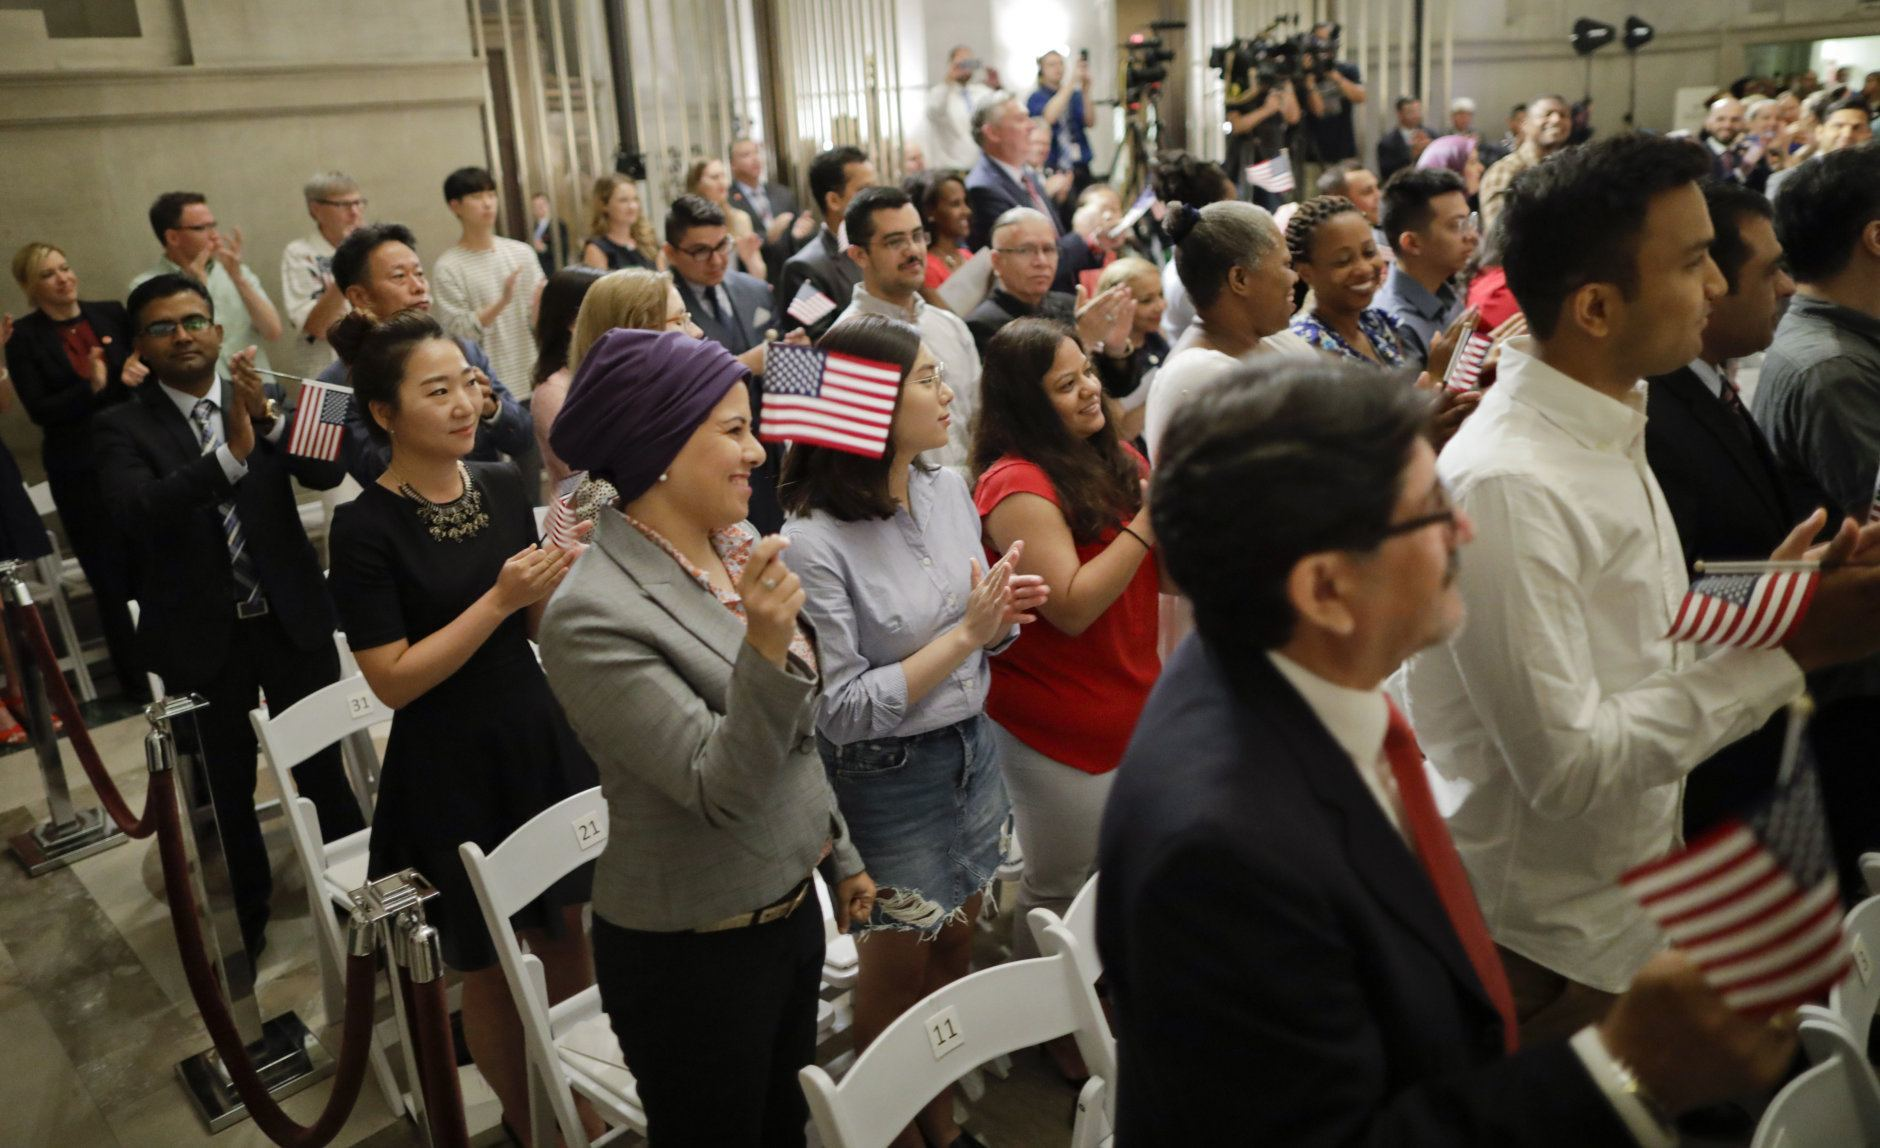 44 local residents celebrate July Fourth by becoming